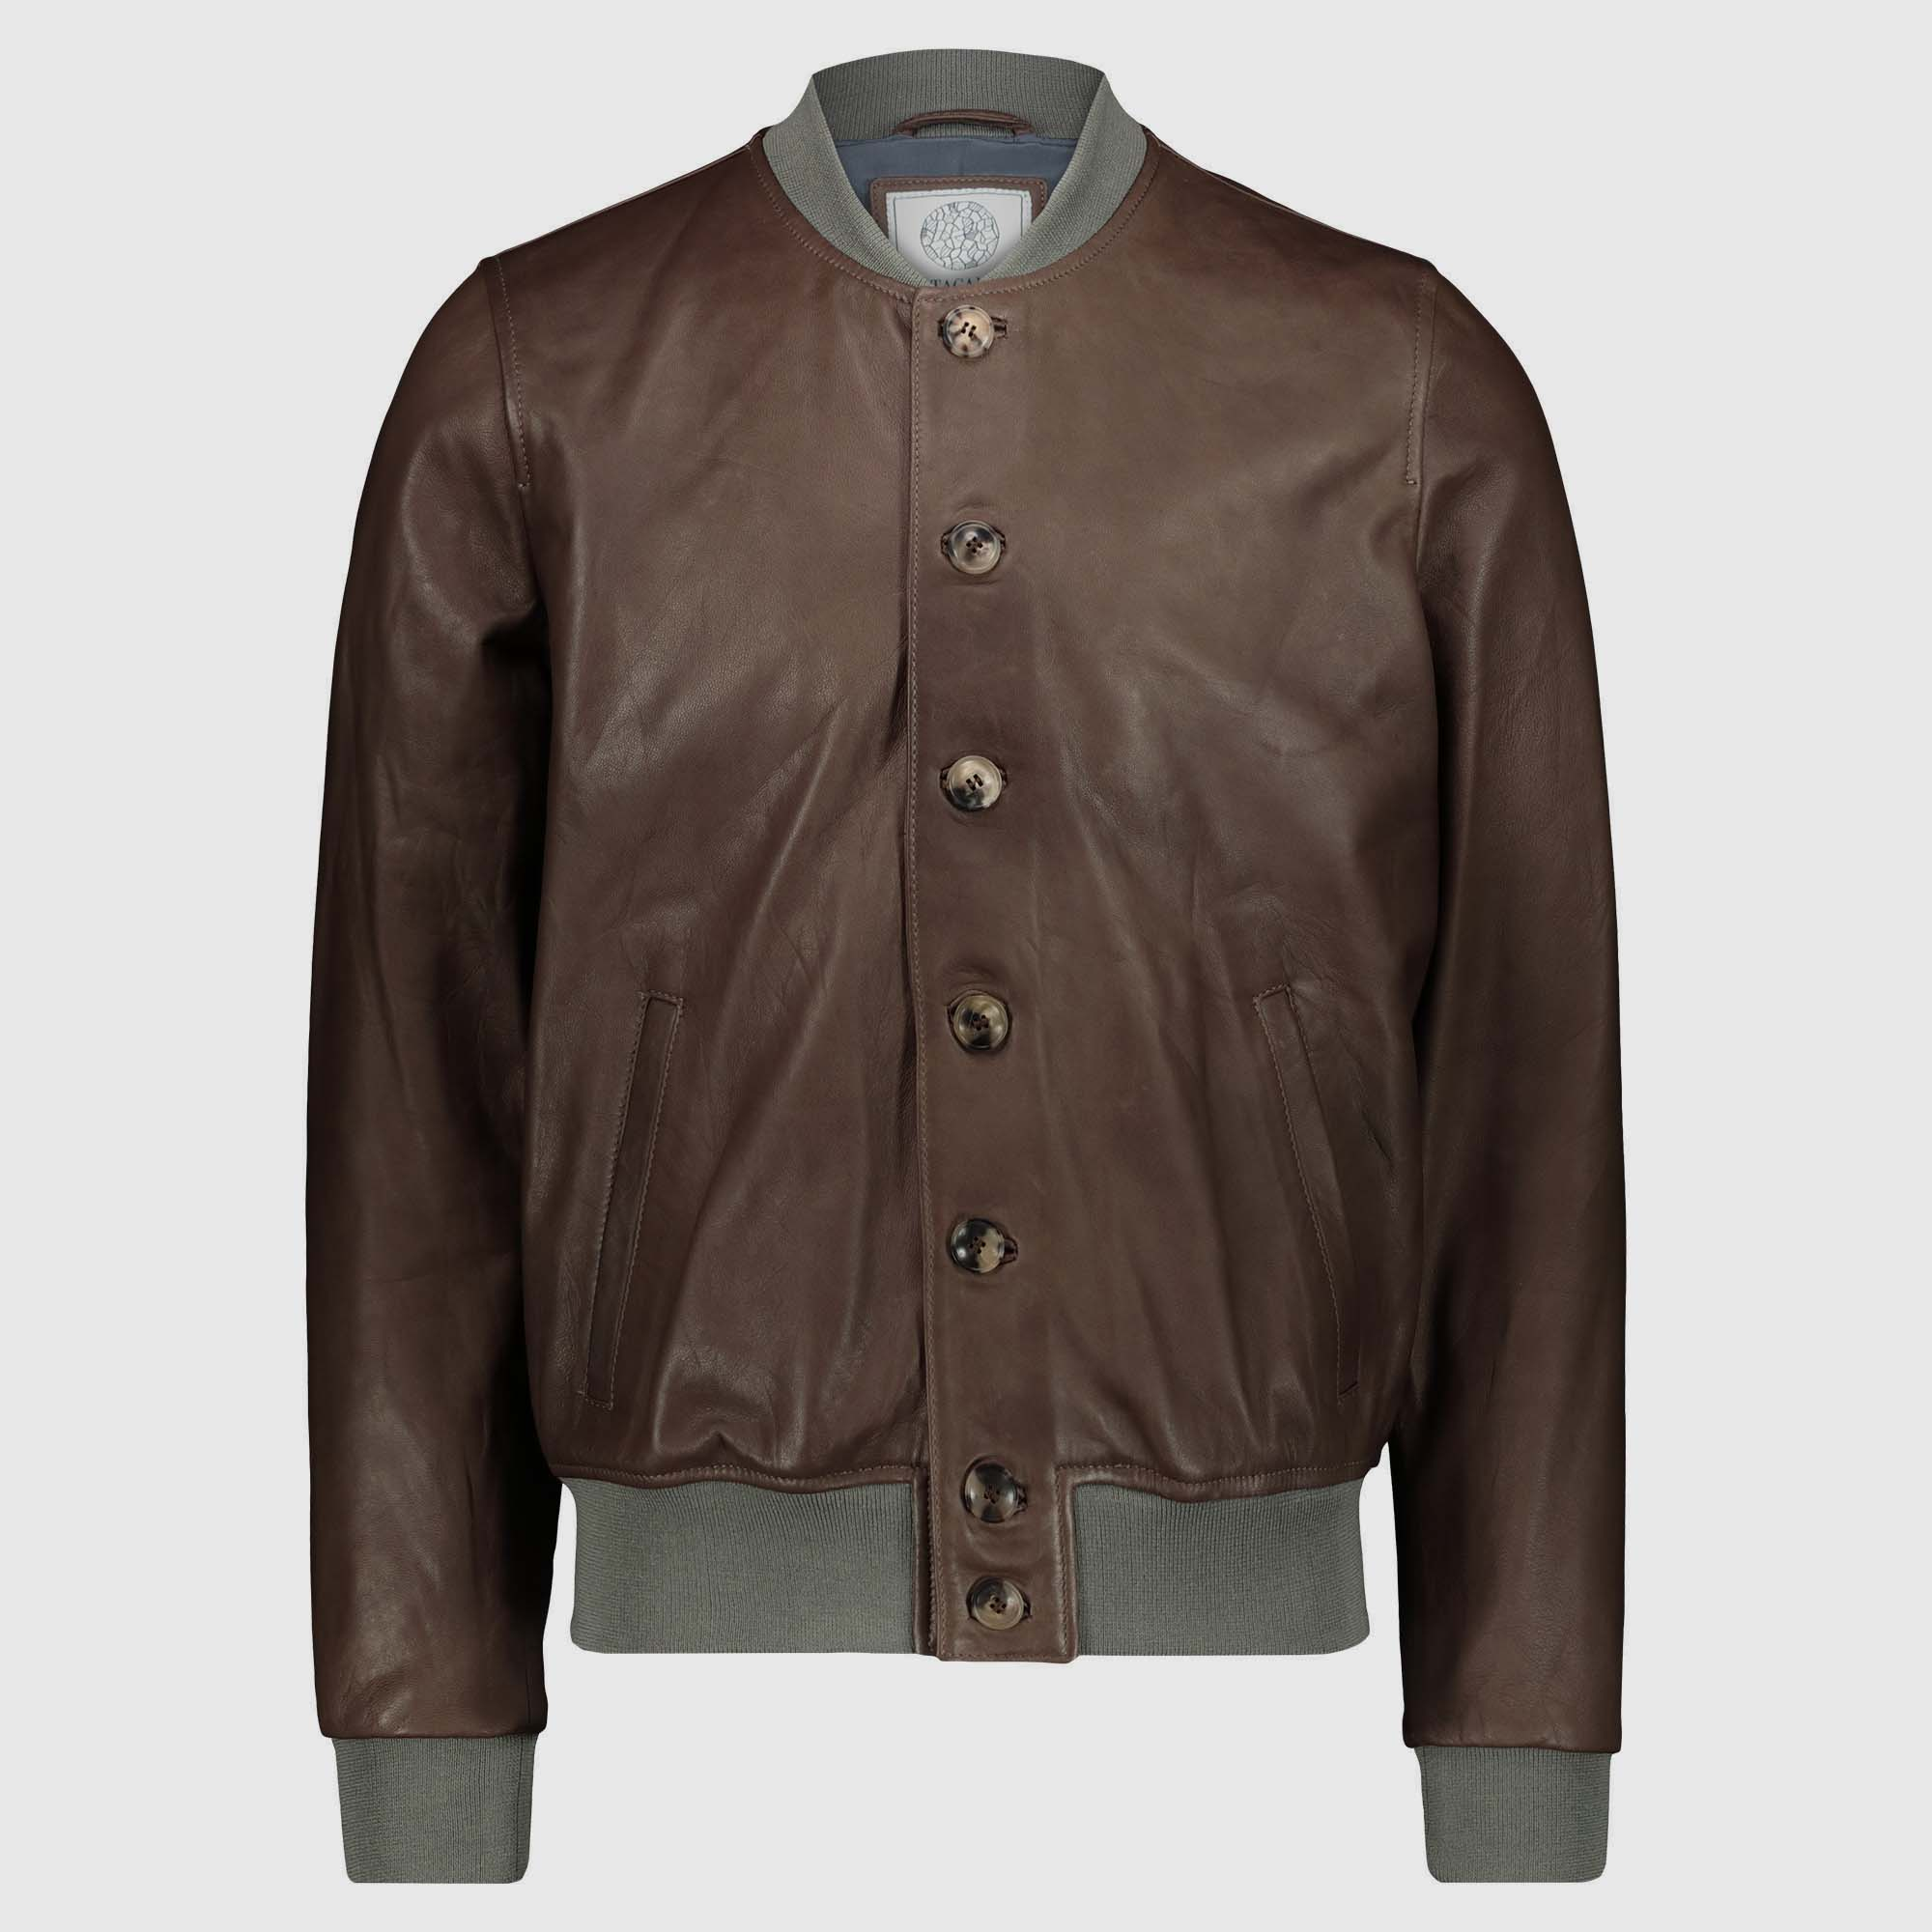 Bomber jacket in a brown natural leather